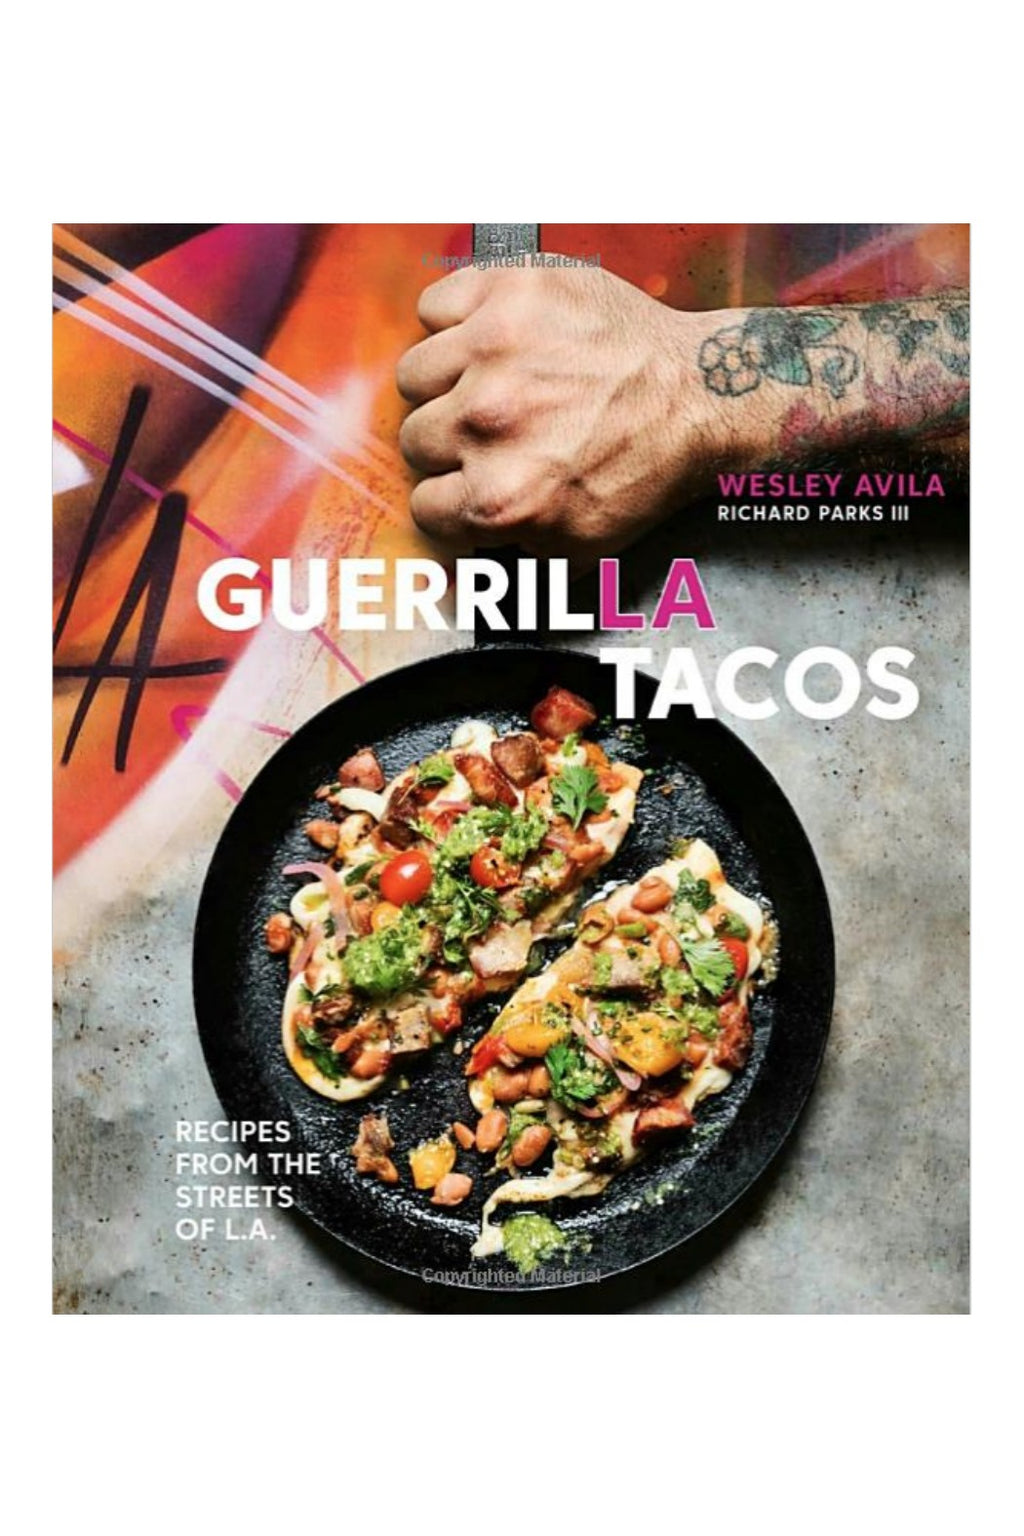 Guerrilla Tacos: Recipes from the Streets of L.A. by Wesley Avila